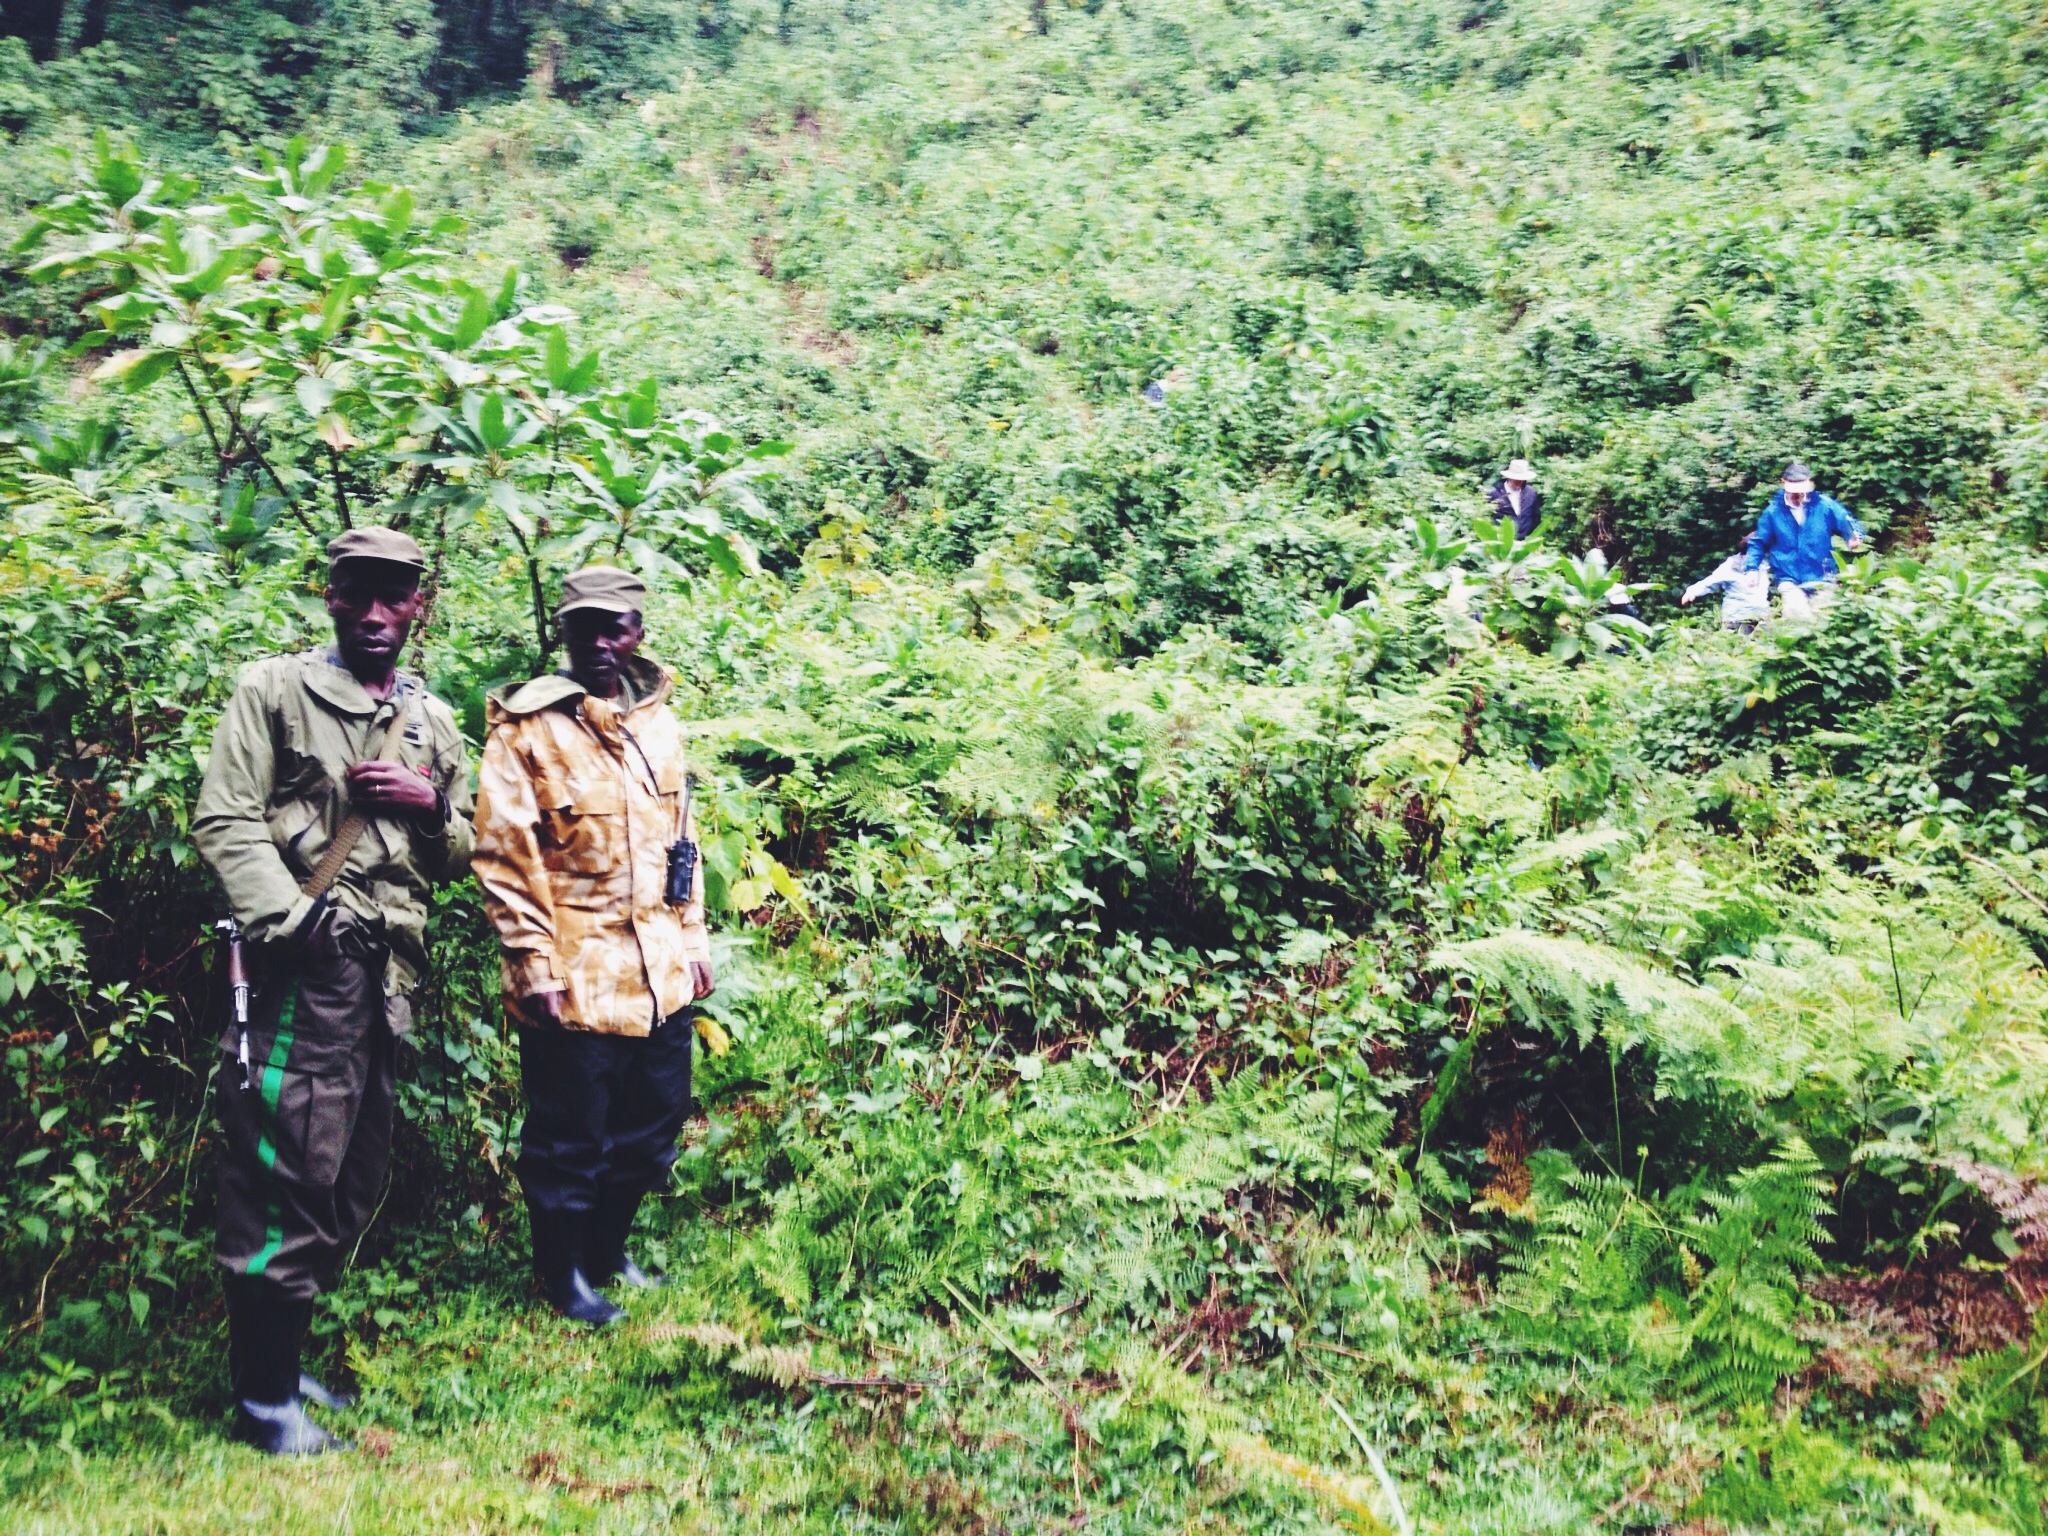 Virunga national park guide and tracker.